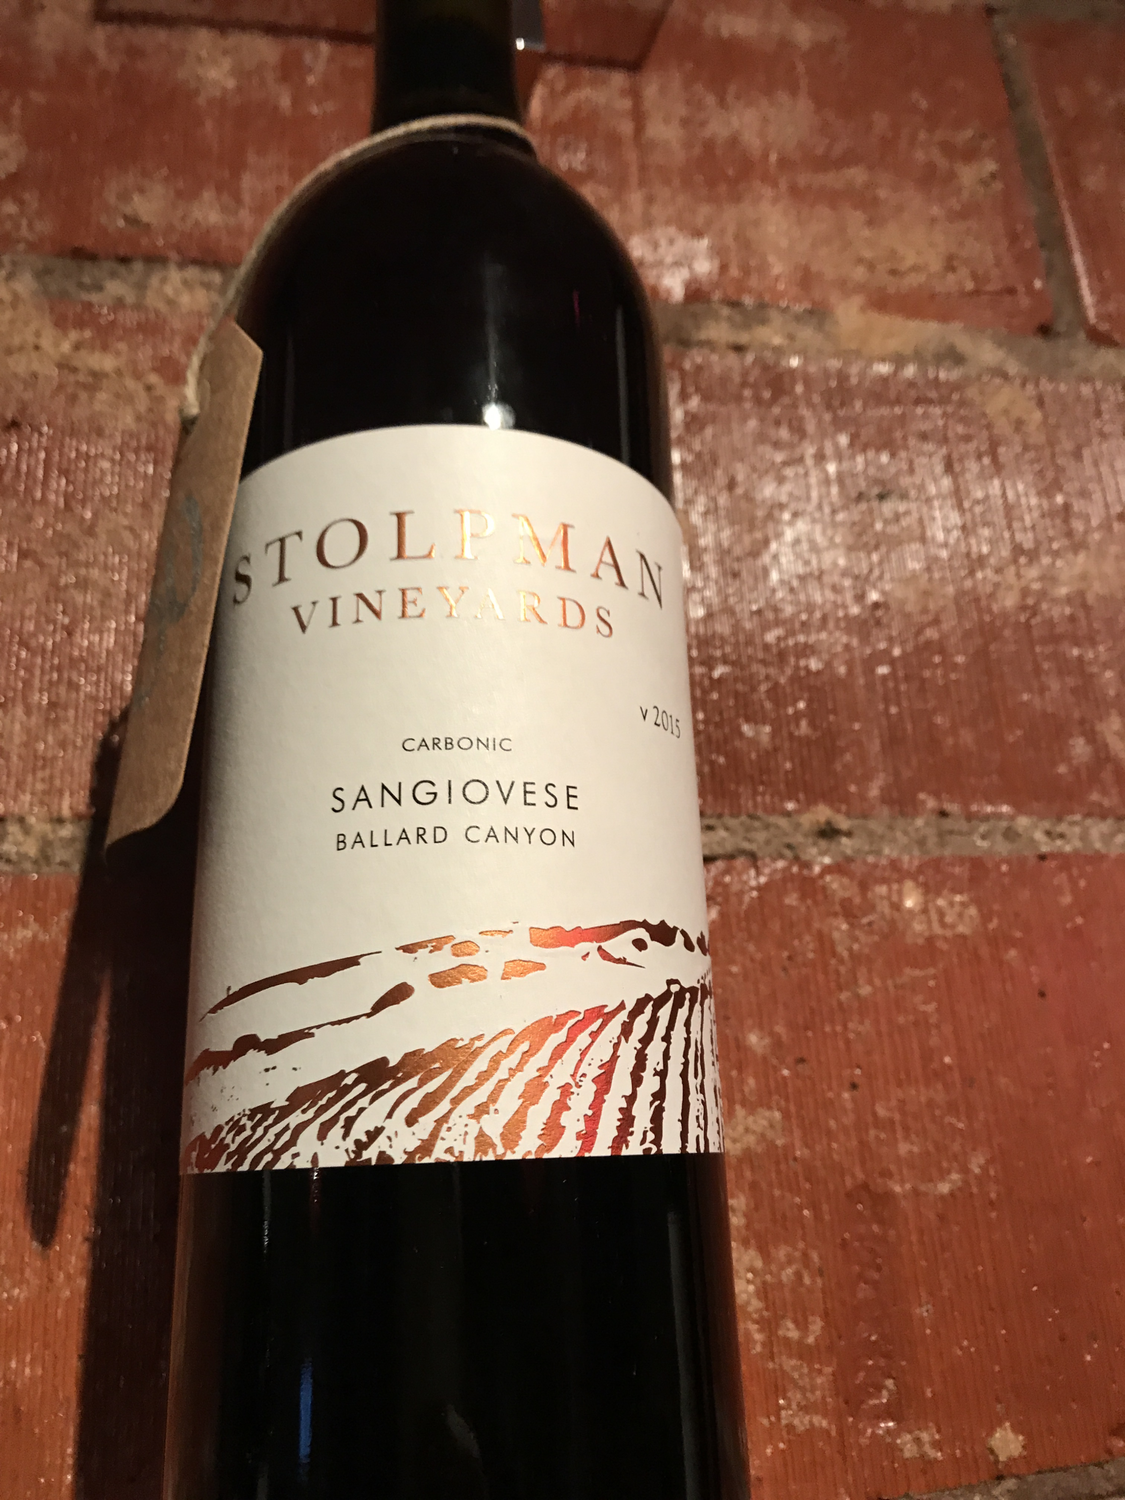 Stolpman Carbonic Sangiovese 2015